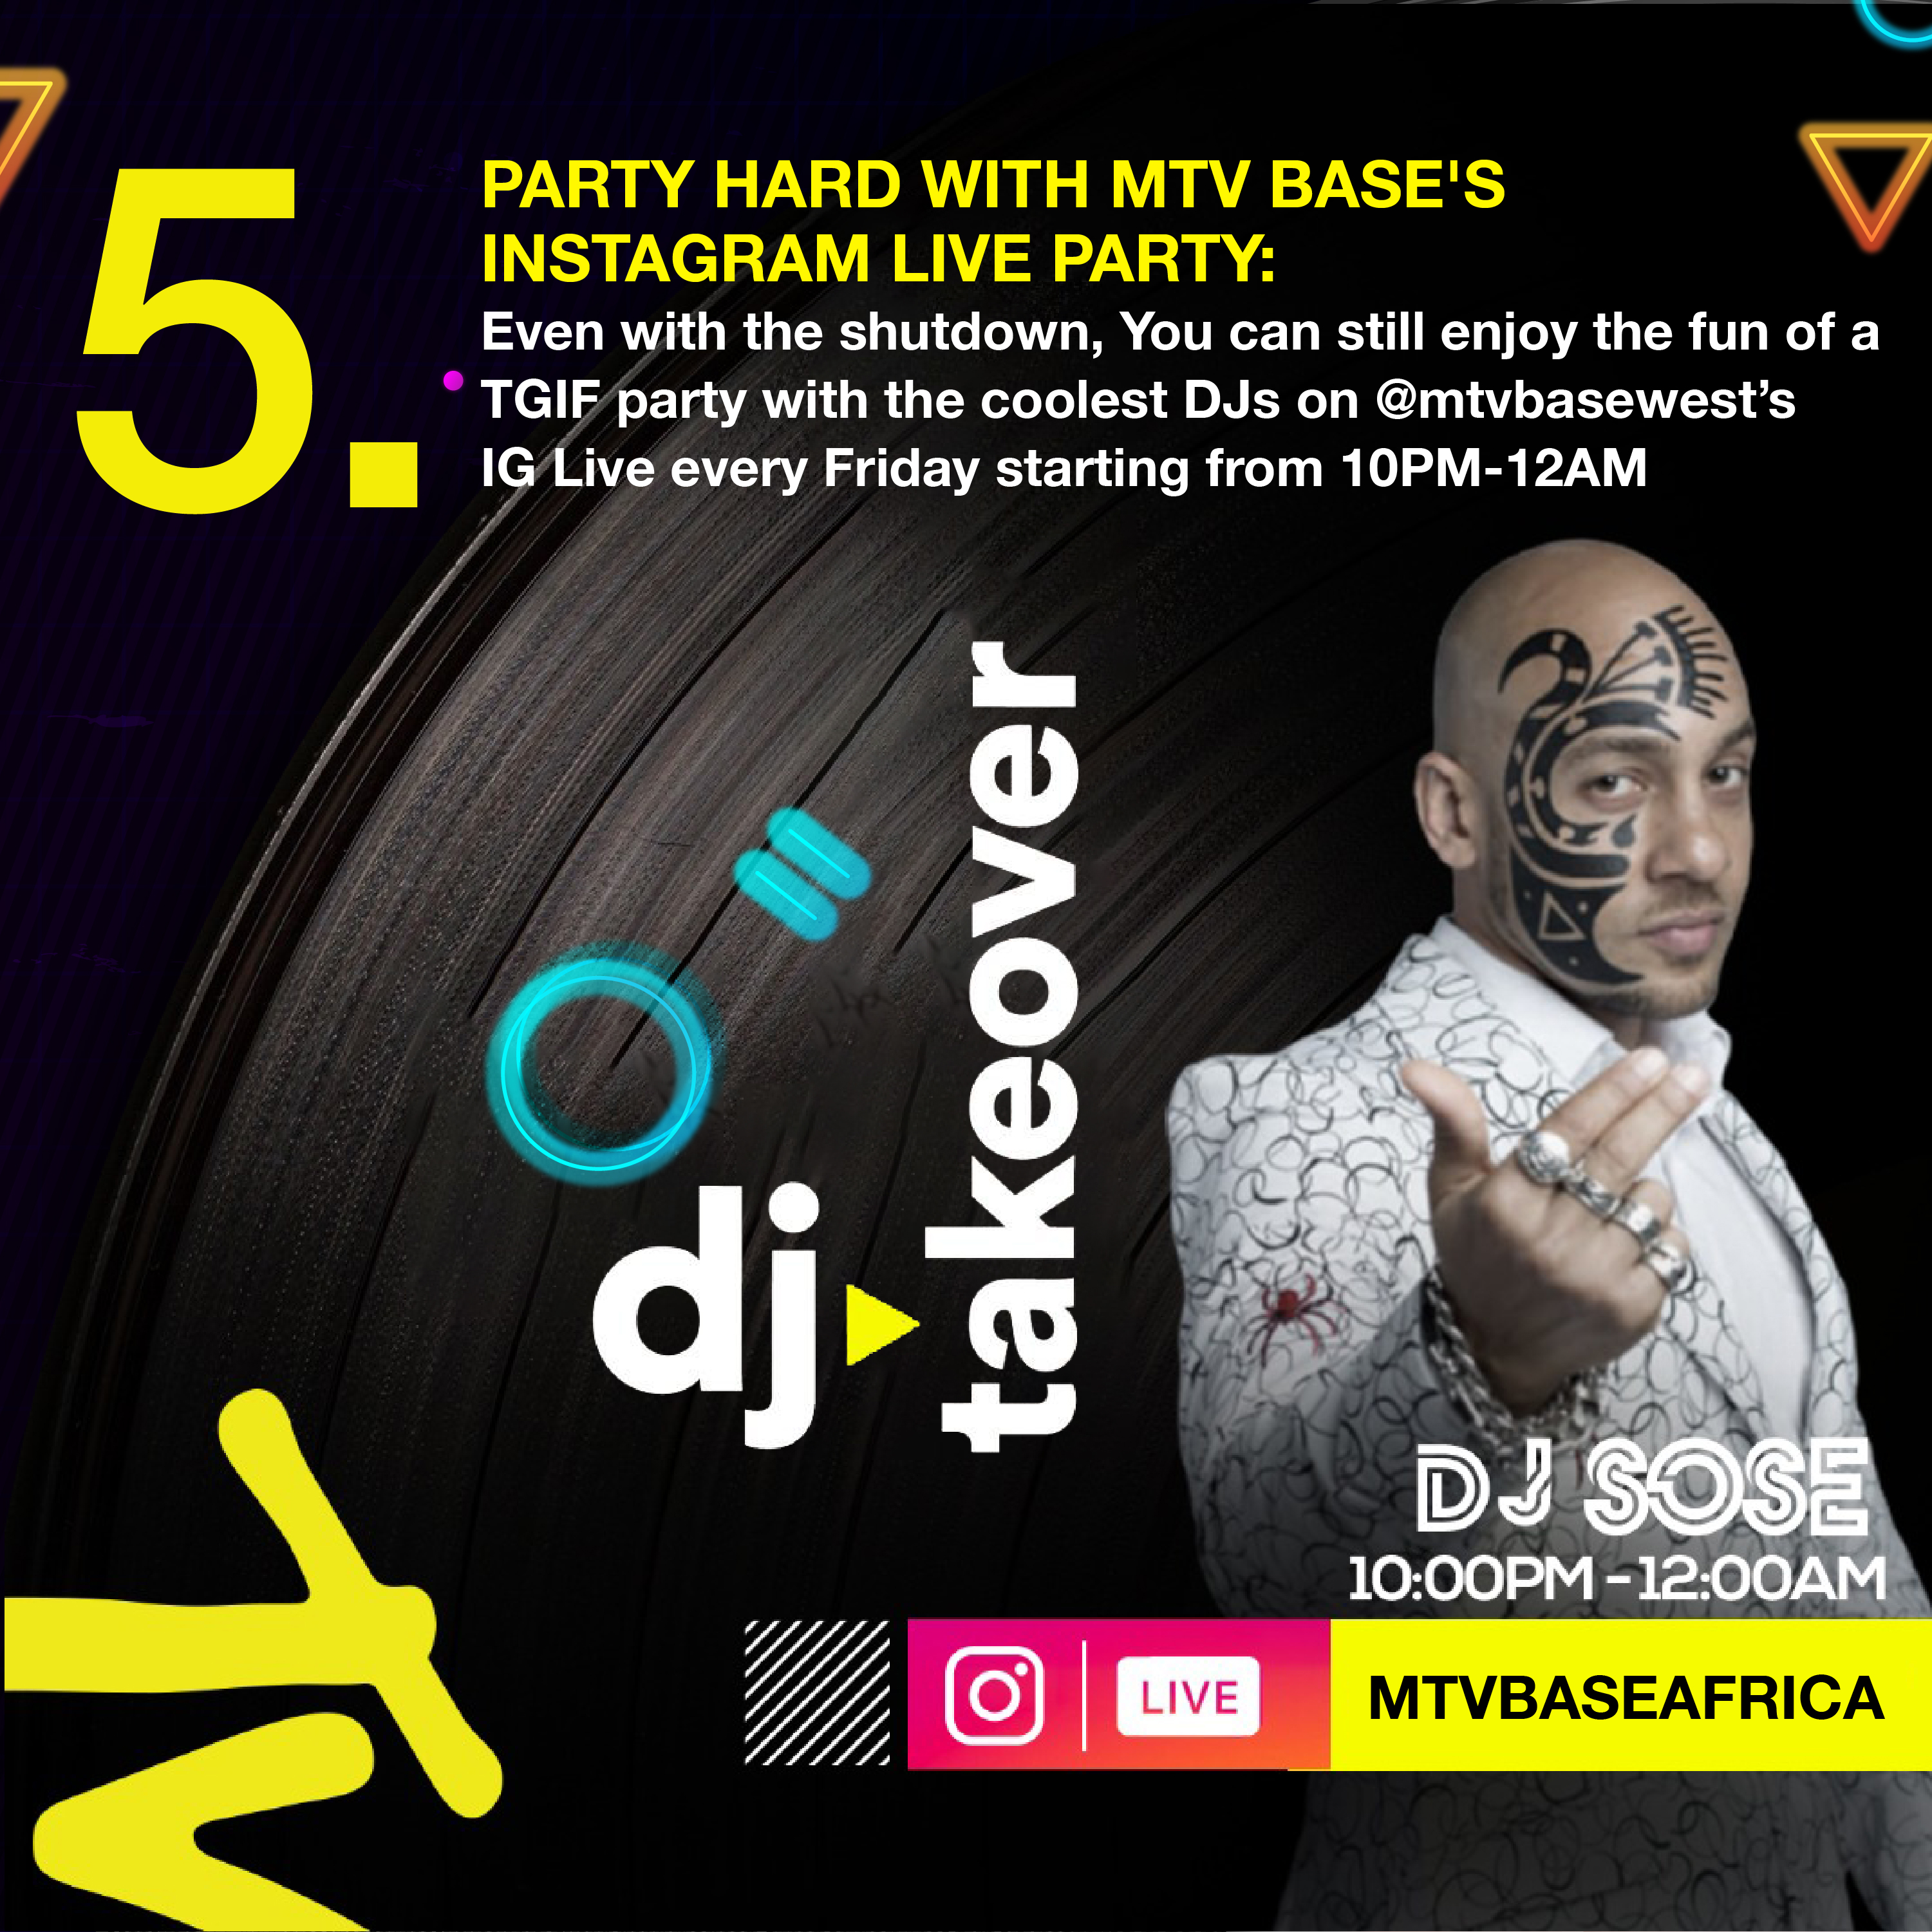 The Live IG Party From MTV Base is how to Spend Your Friday Night